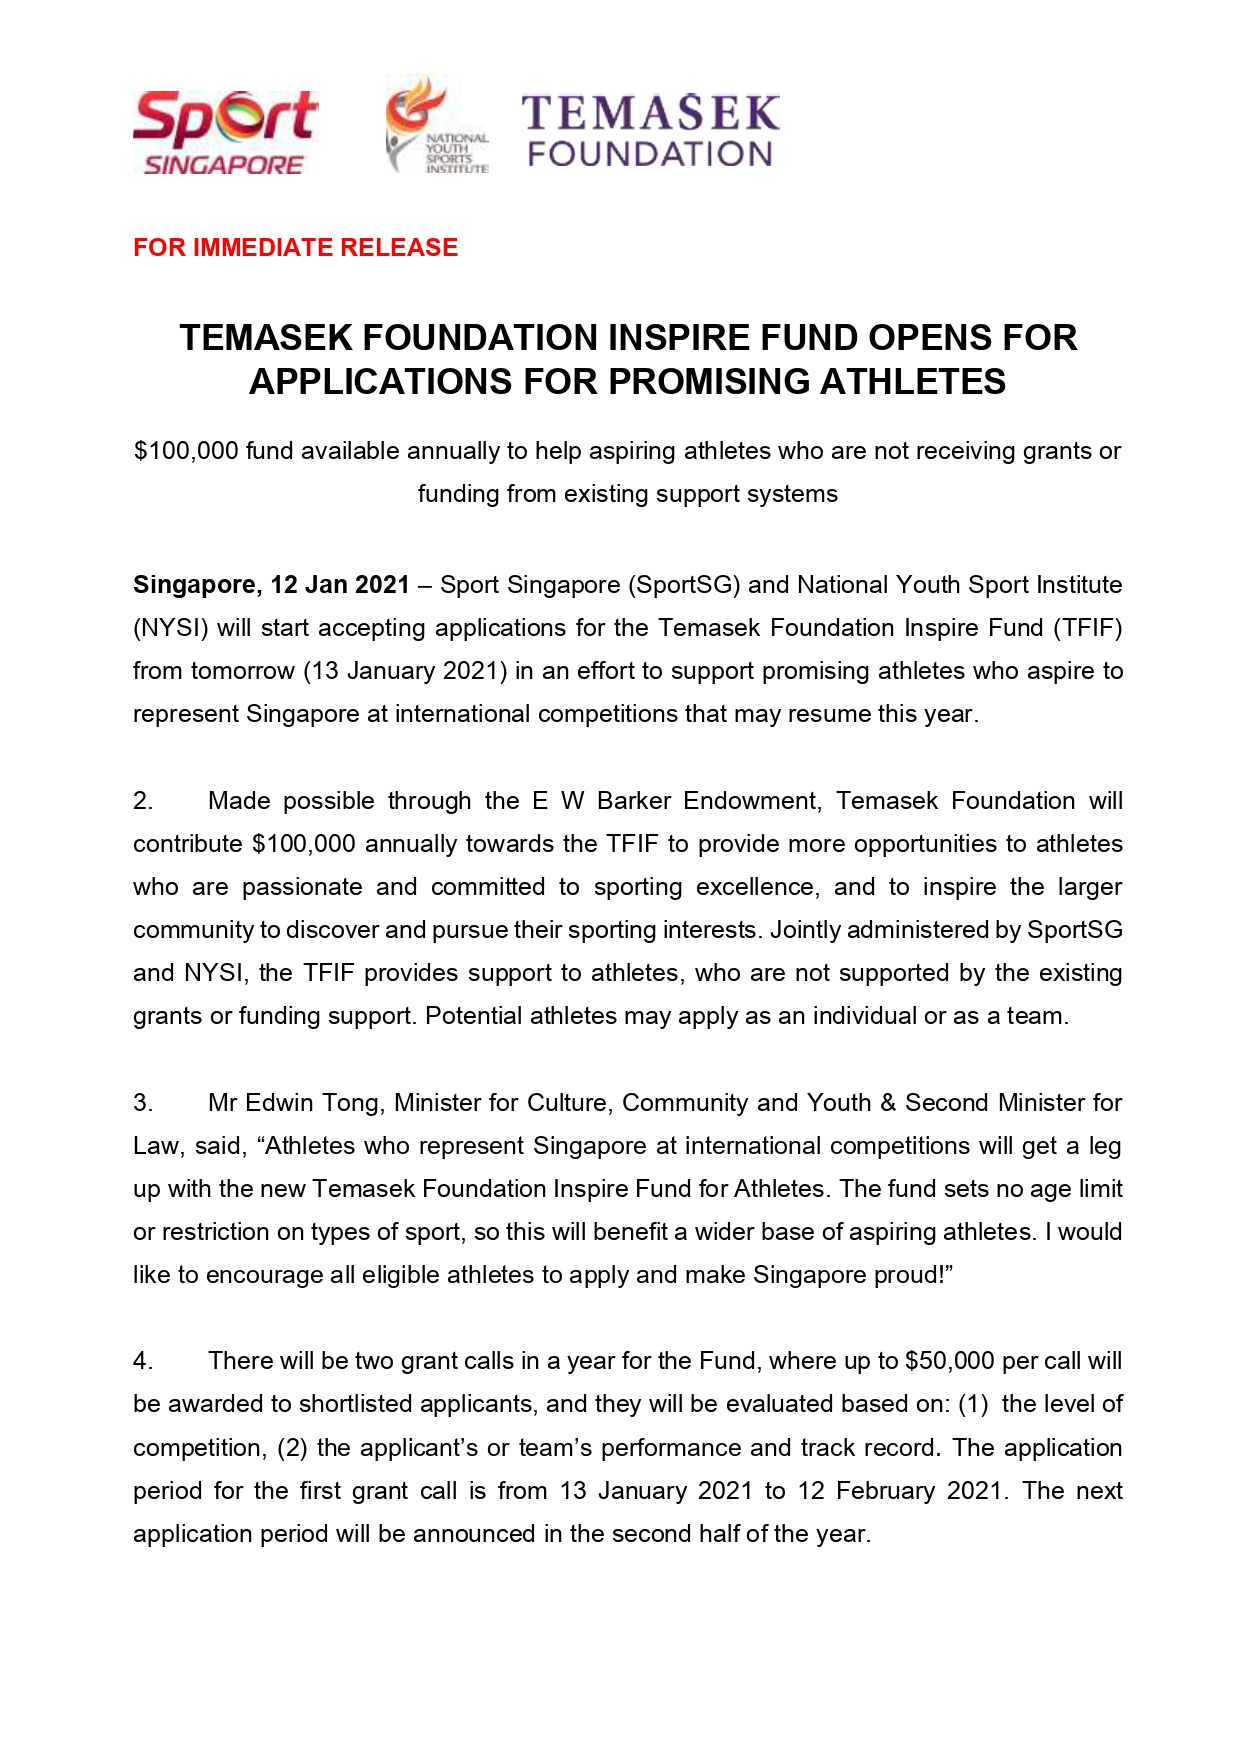 Temasek Foundation Inspire Fund Opens For Applications For Promising Athletes pg01